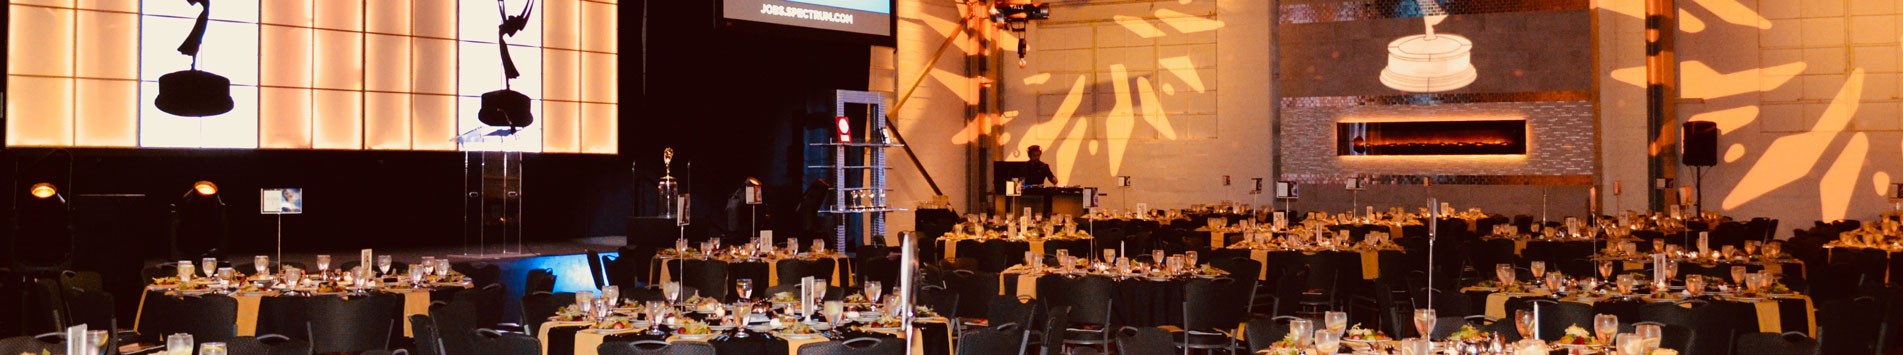 Crane Bay venue set up for an awards function for a corporate event